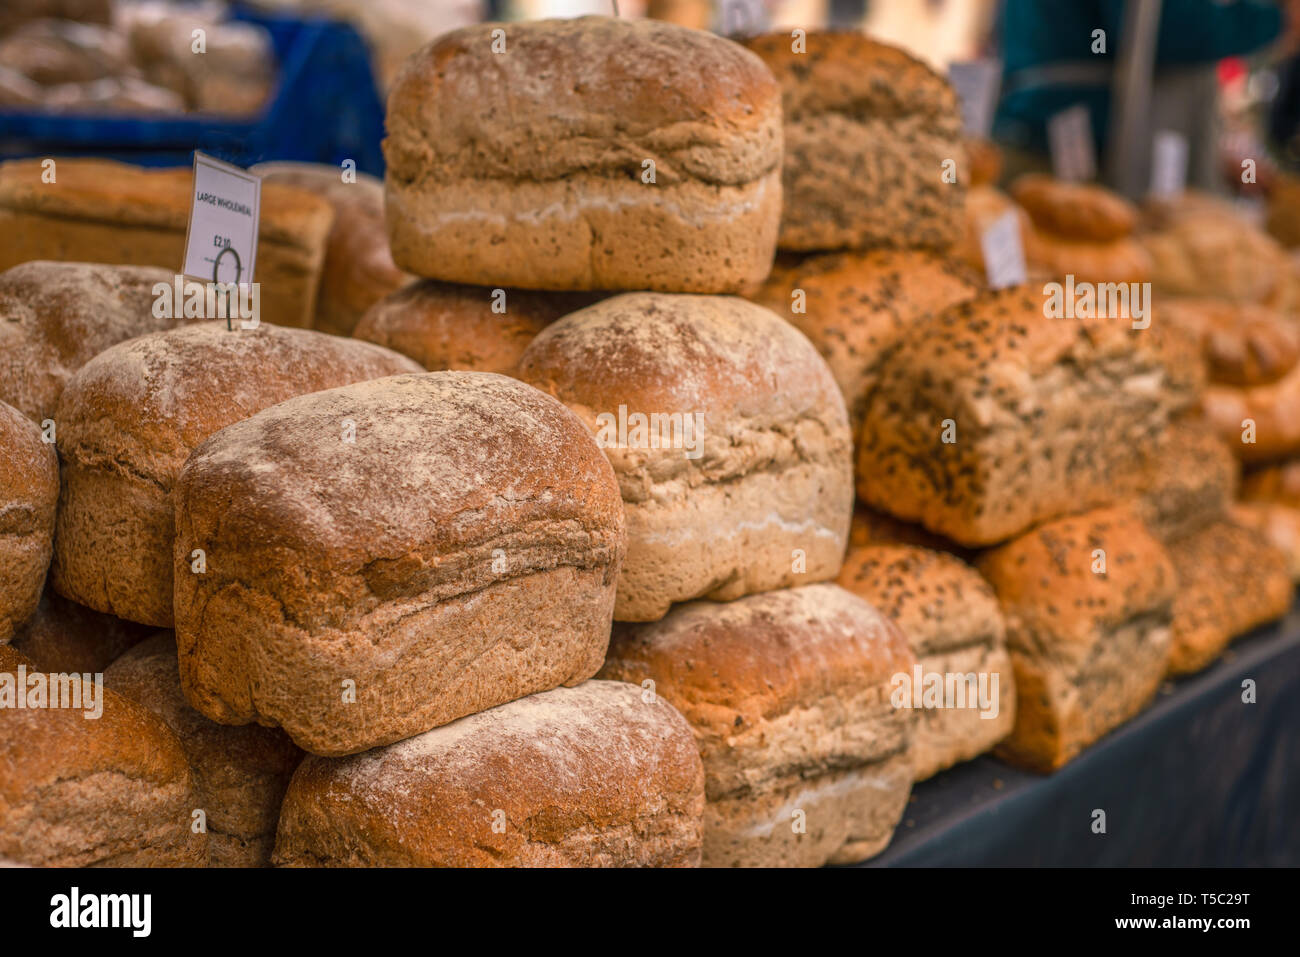 Loaves of Freshly Baked Wholemeal Bread for Sale at a Street Market in England Stock Photo